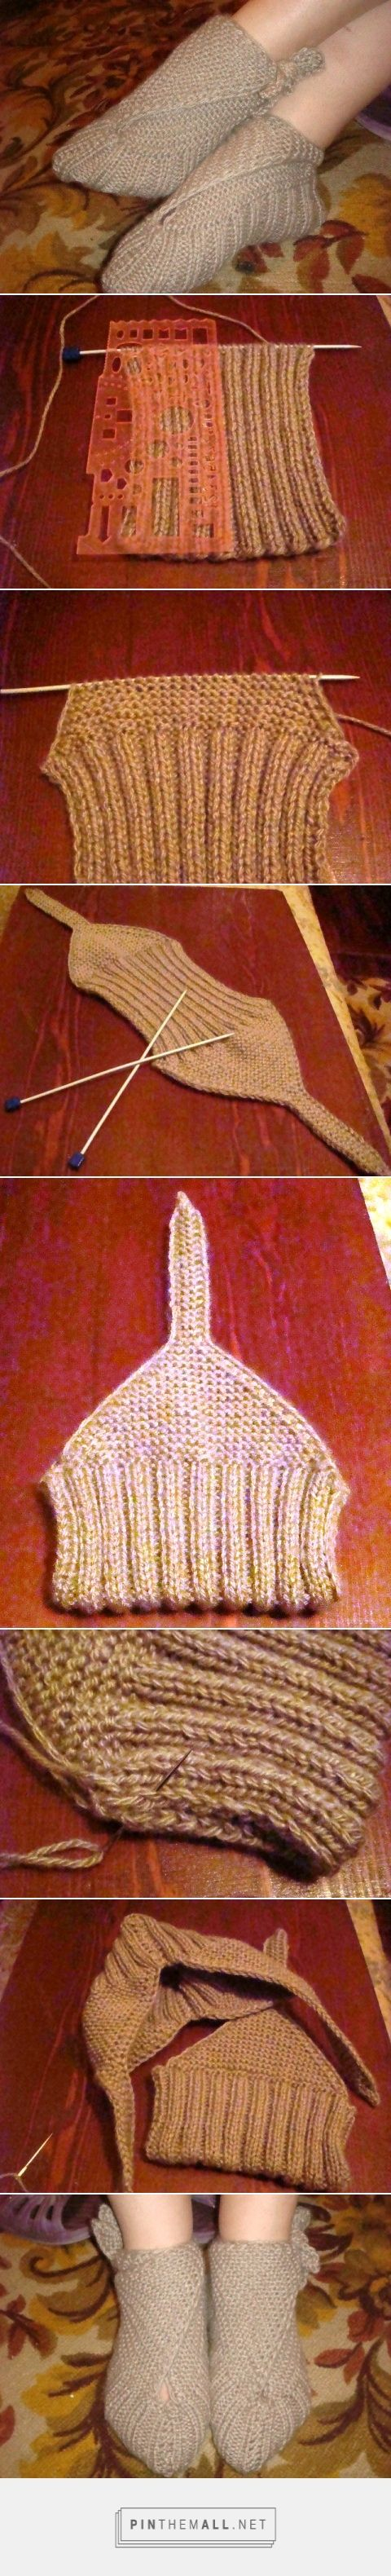 "Sling-Heel or ""Japanese"" knitted slippers ~~ Google translation from Russian: 1- Cast on 40 sts, work 2x2 ribbing until piece is 17-18 cm long with ""thick"" yarn, possibly Worsted or Aran on 5mm needles ~ 2- Decr. 2 sts on each side and work in garter stitch, decr 1 st in each row until 5 sts are left on needles. Then work straps to length according to ankle size. I did  20-row straps.~ 3- Pick up 40 sts on cast-on edge and repeat step 2. [liveinternet.ru/users/3824100/post300998487/]"